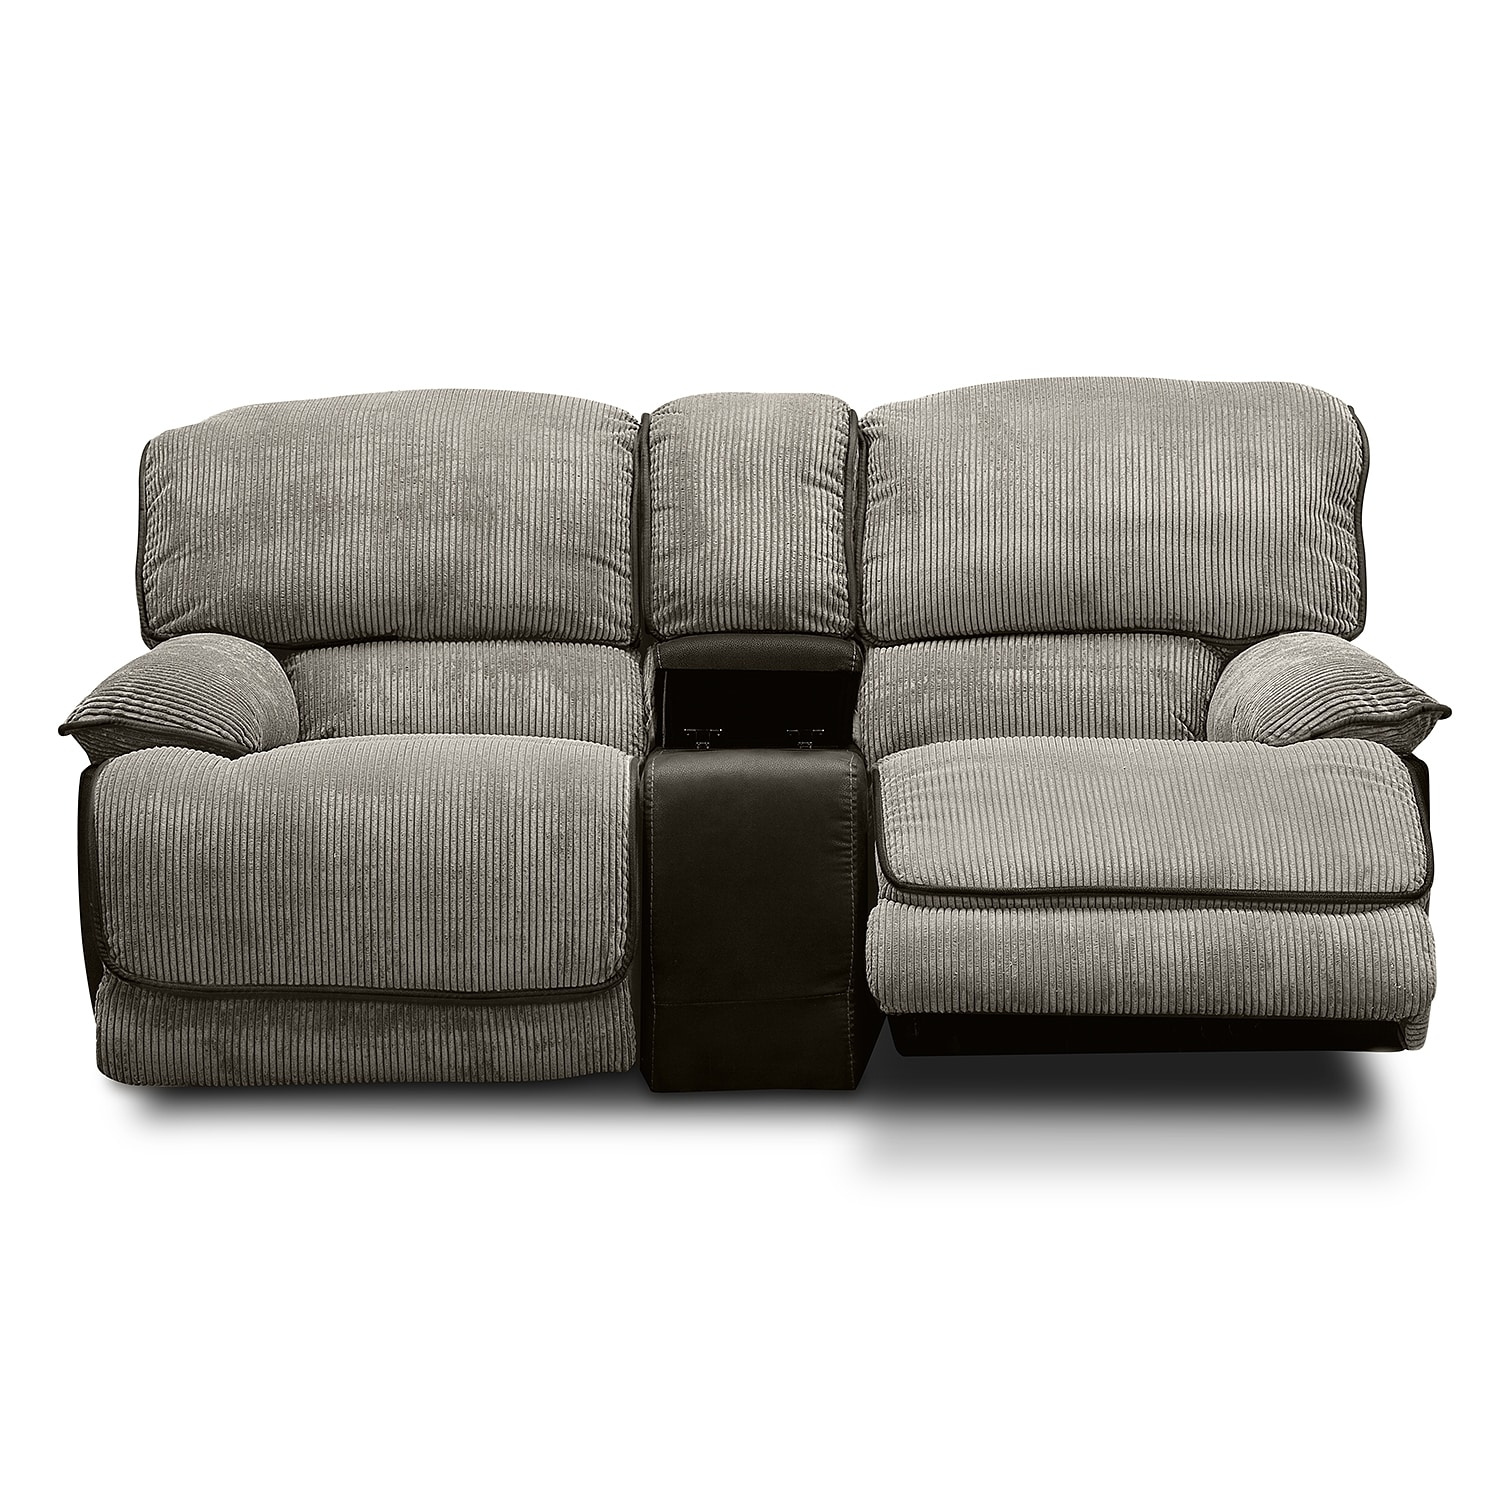 Laguna Ii Gliding Reclining Loveseat Value City Furniture